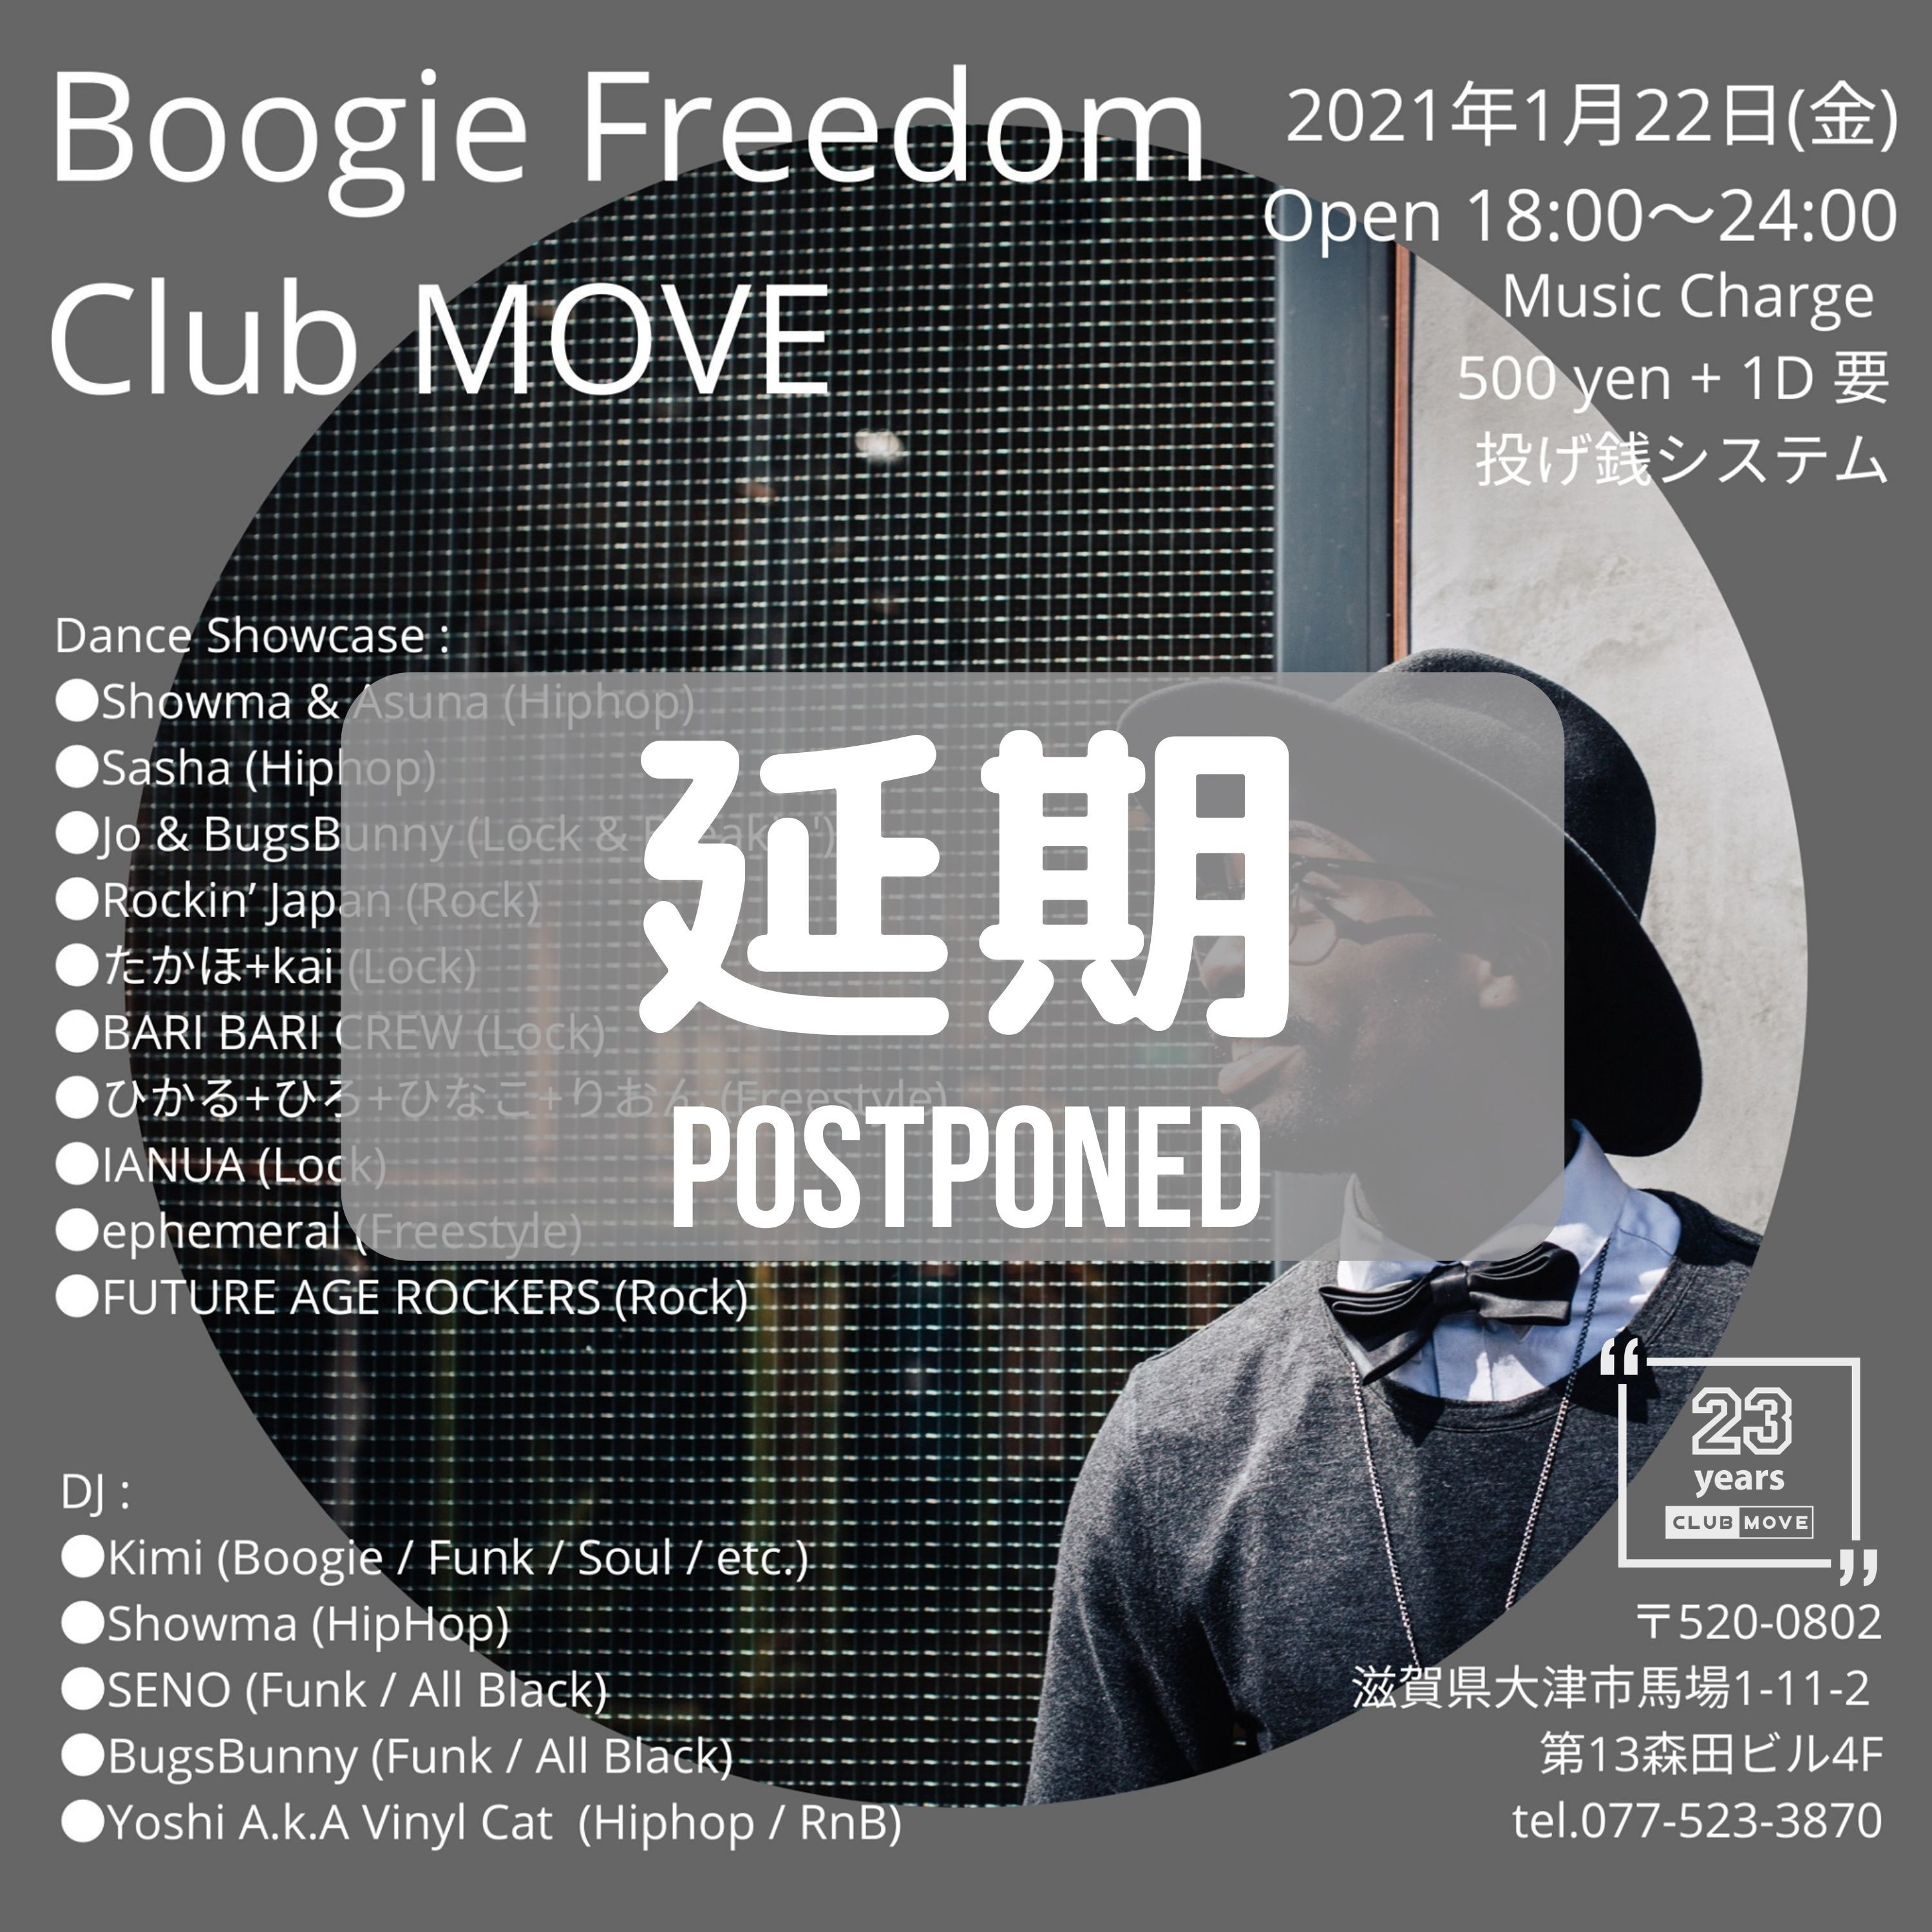 Boogie Freedom